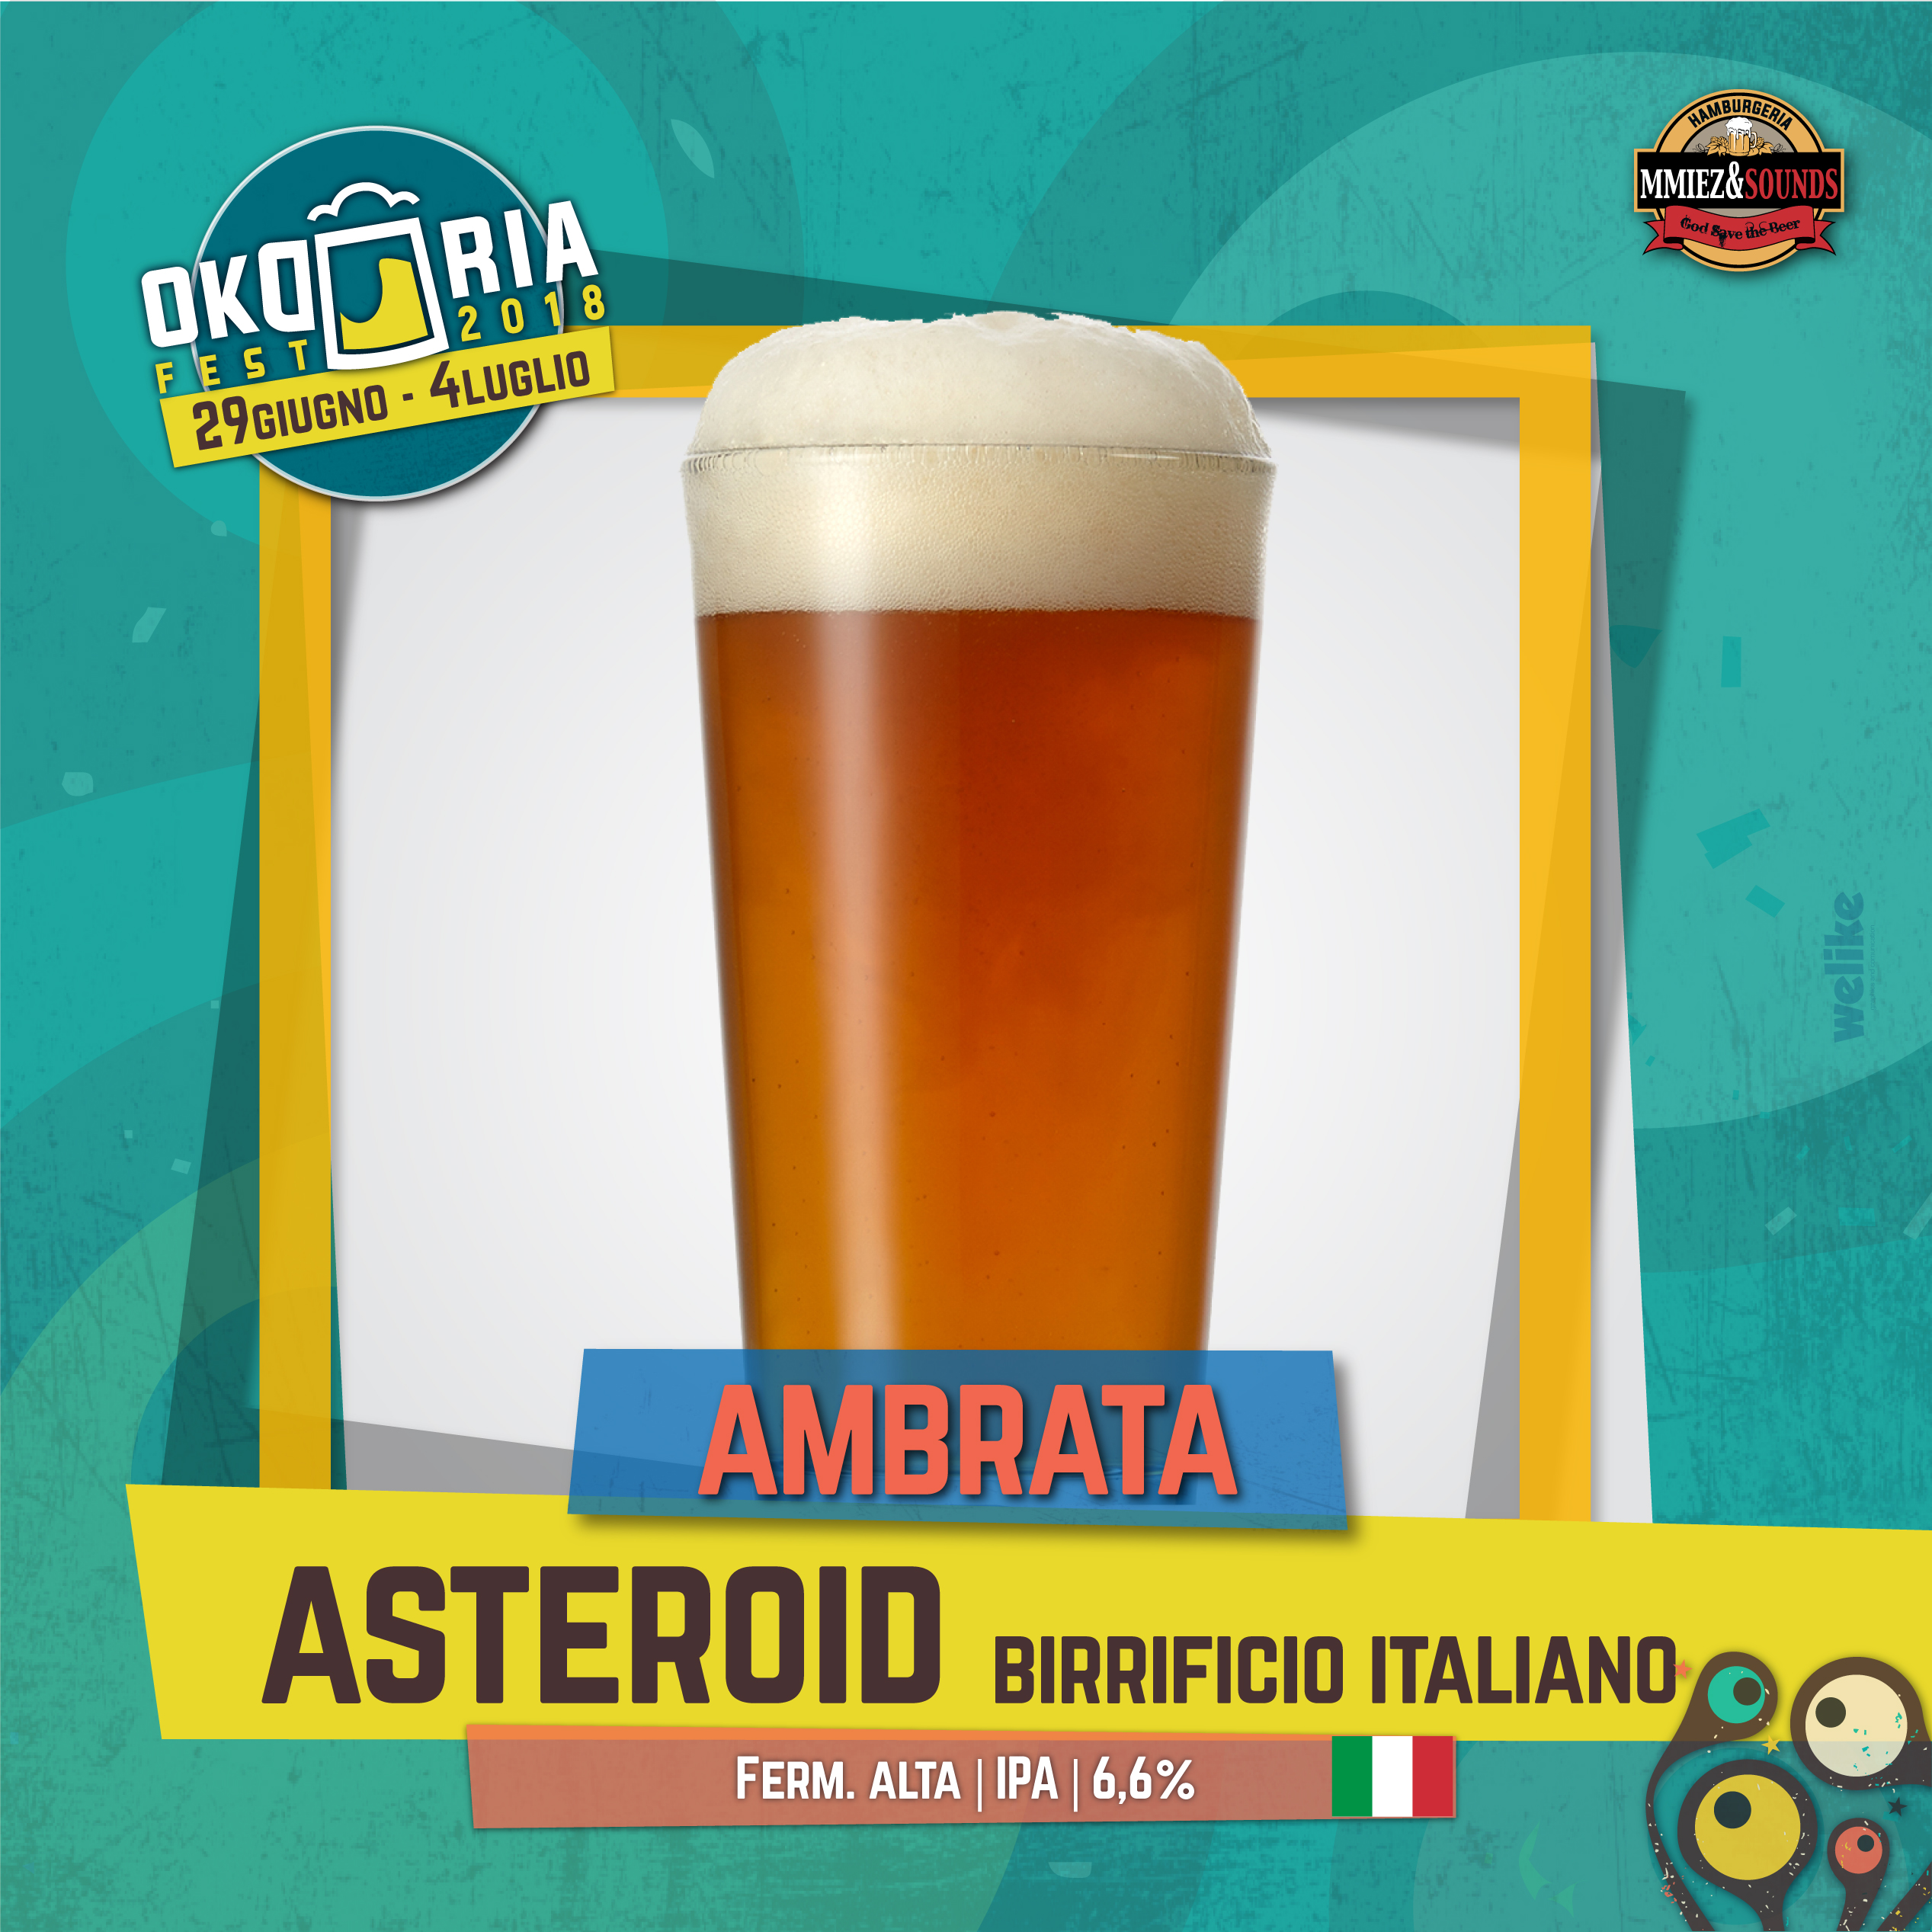 Birrificio Italiano Asteroid